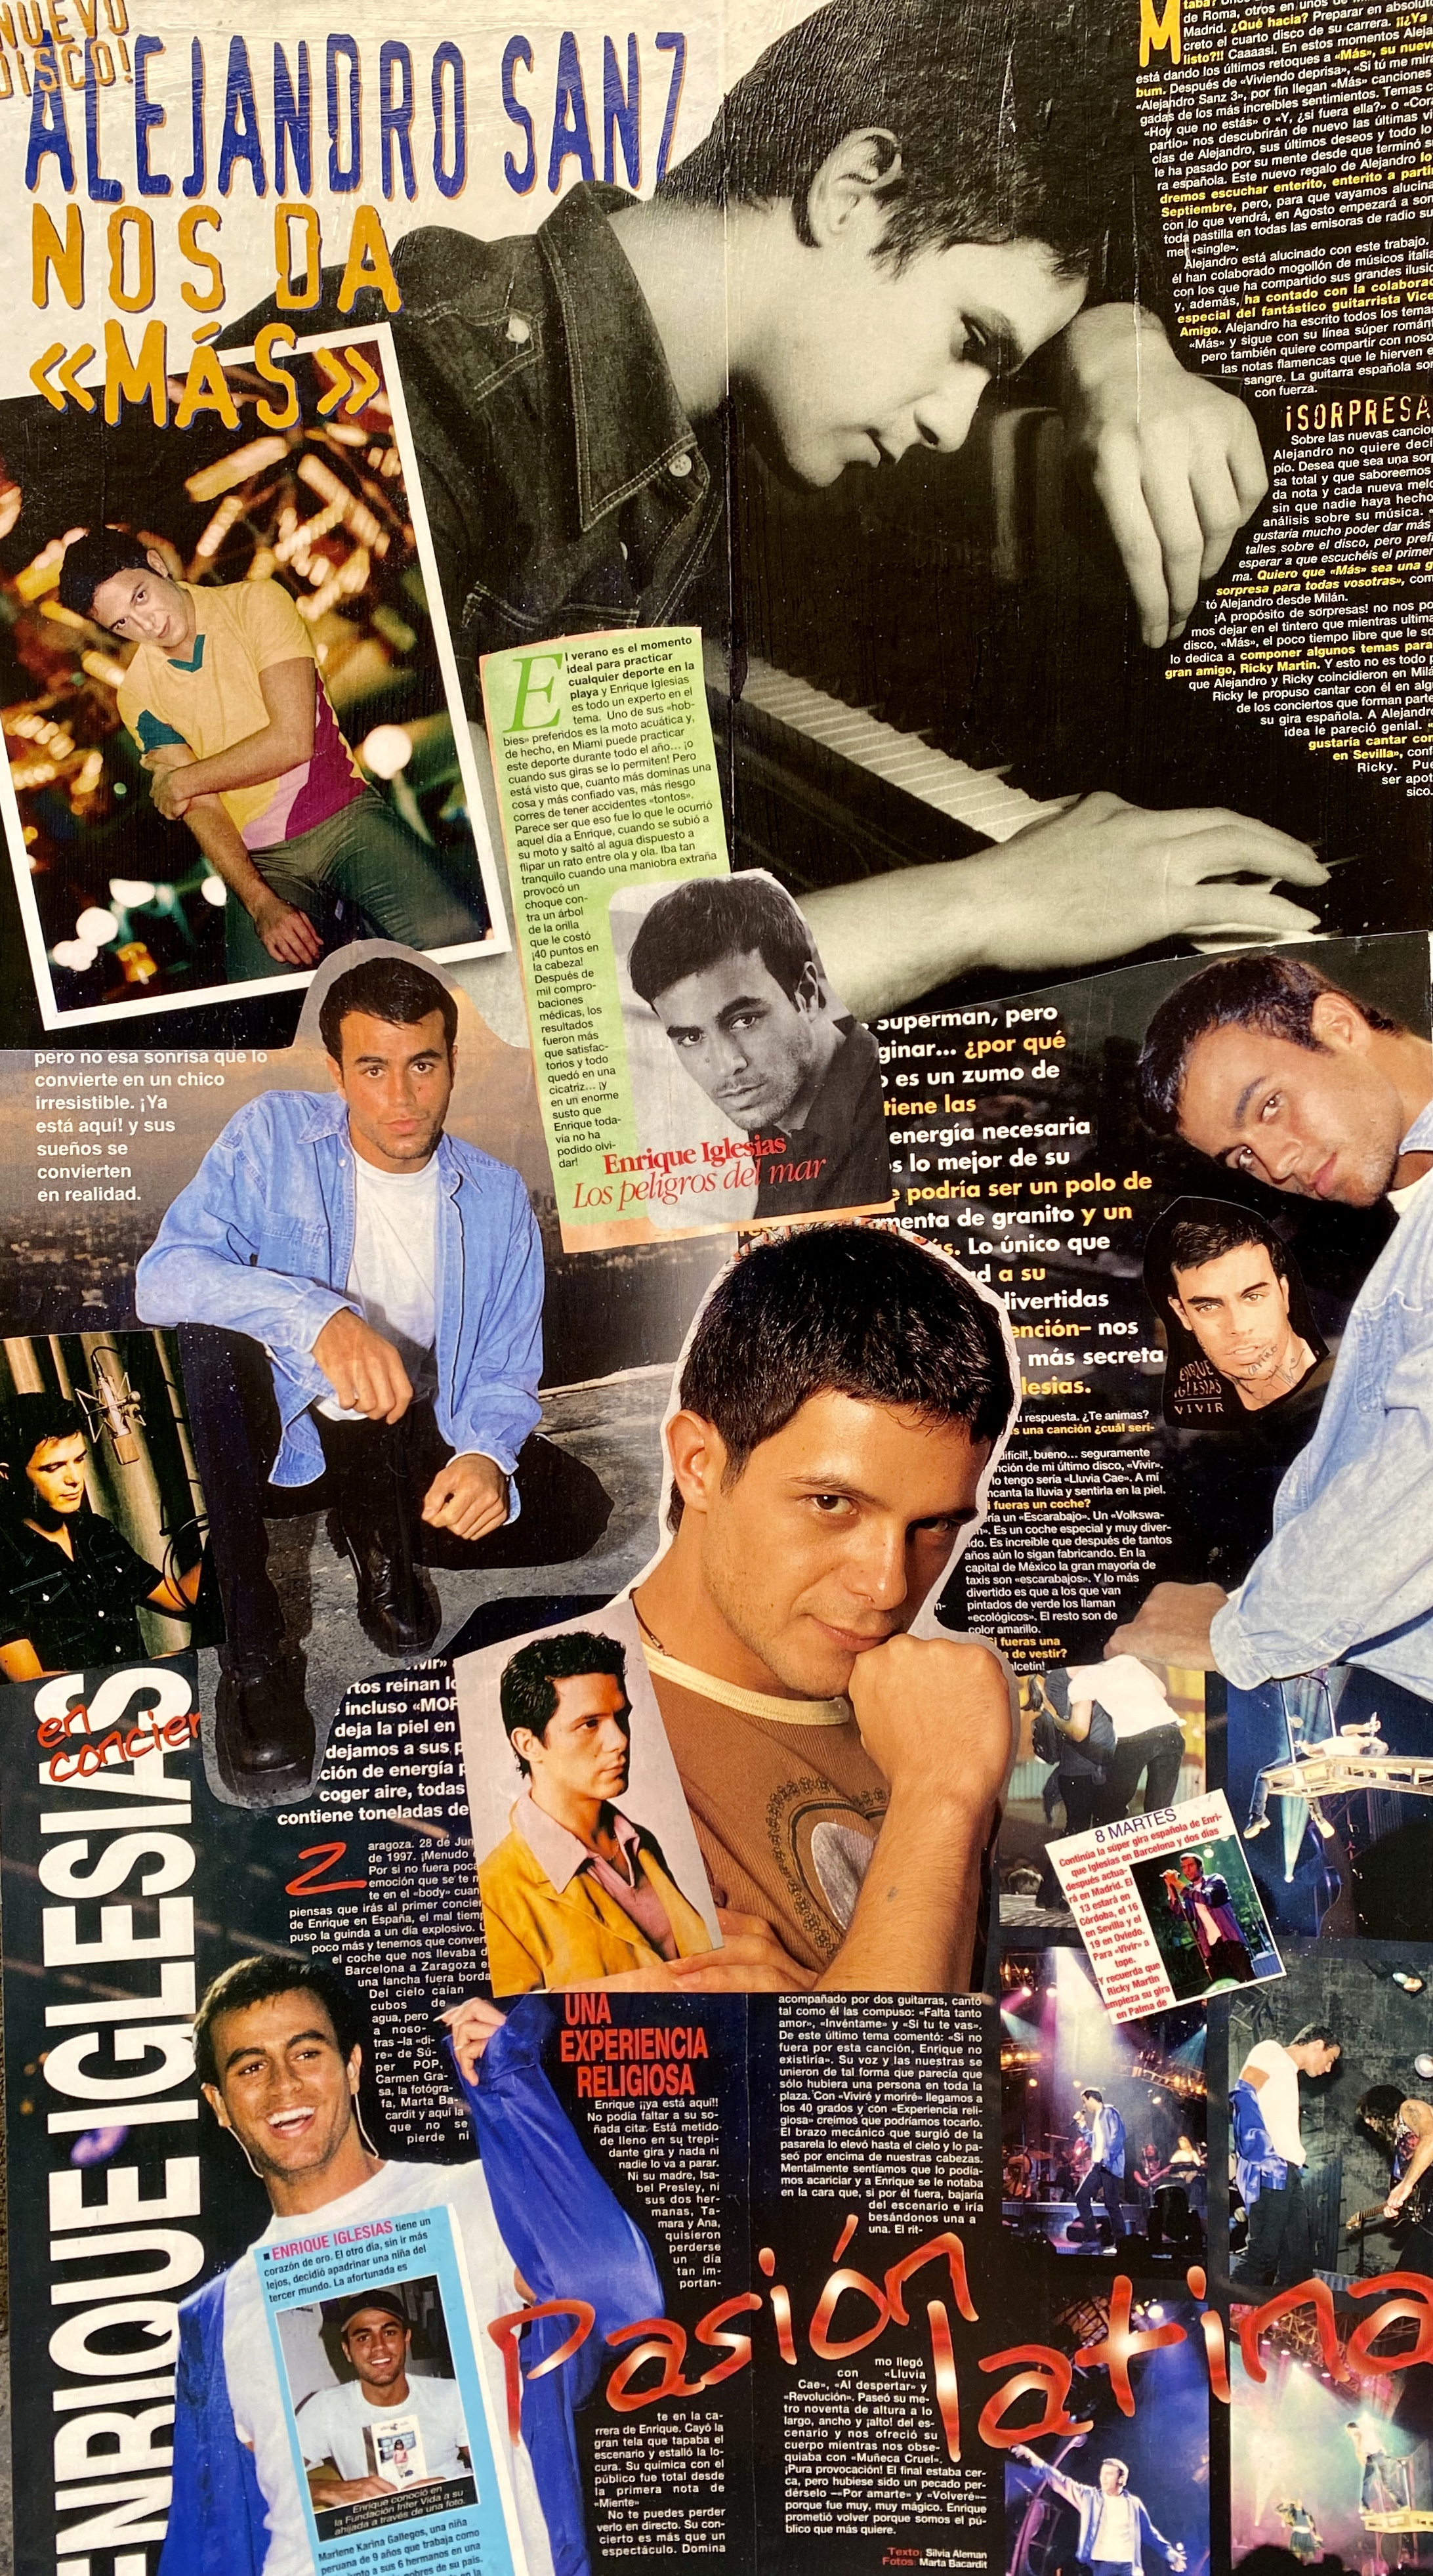 Collage Alejandro Sanz